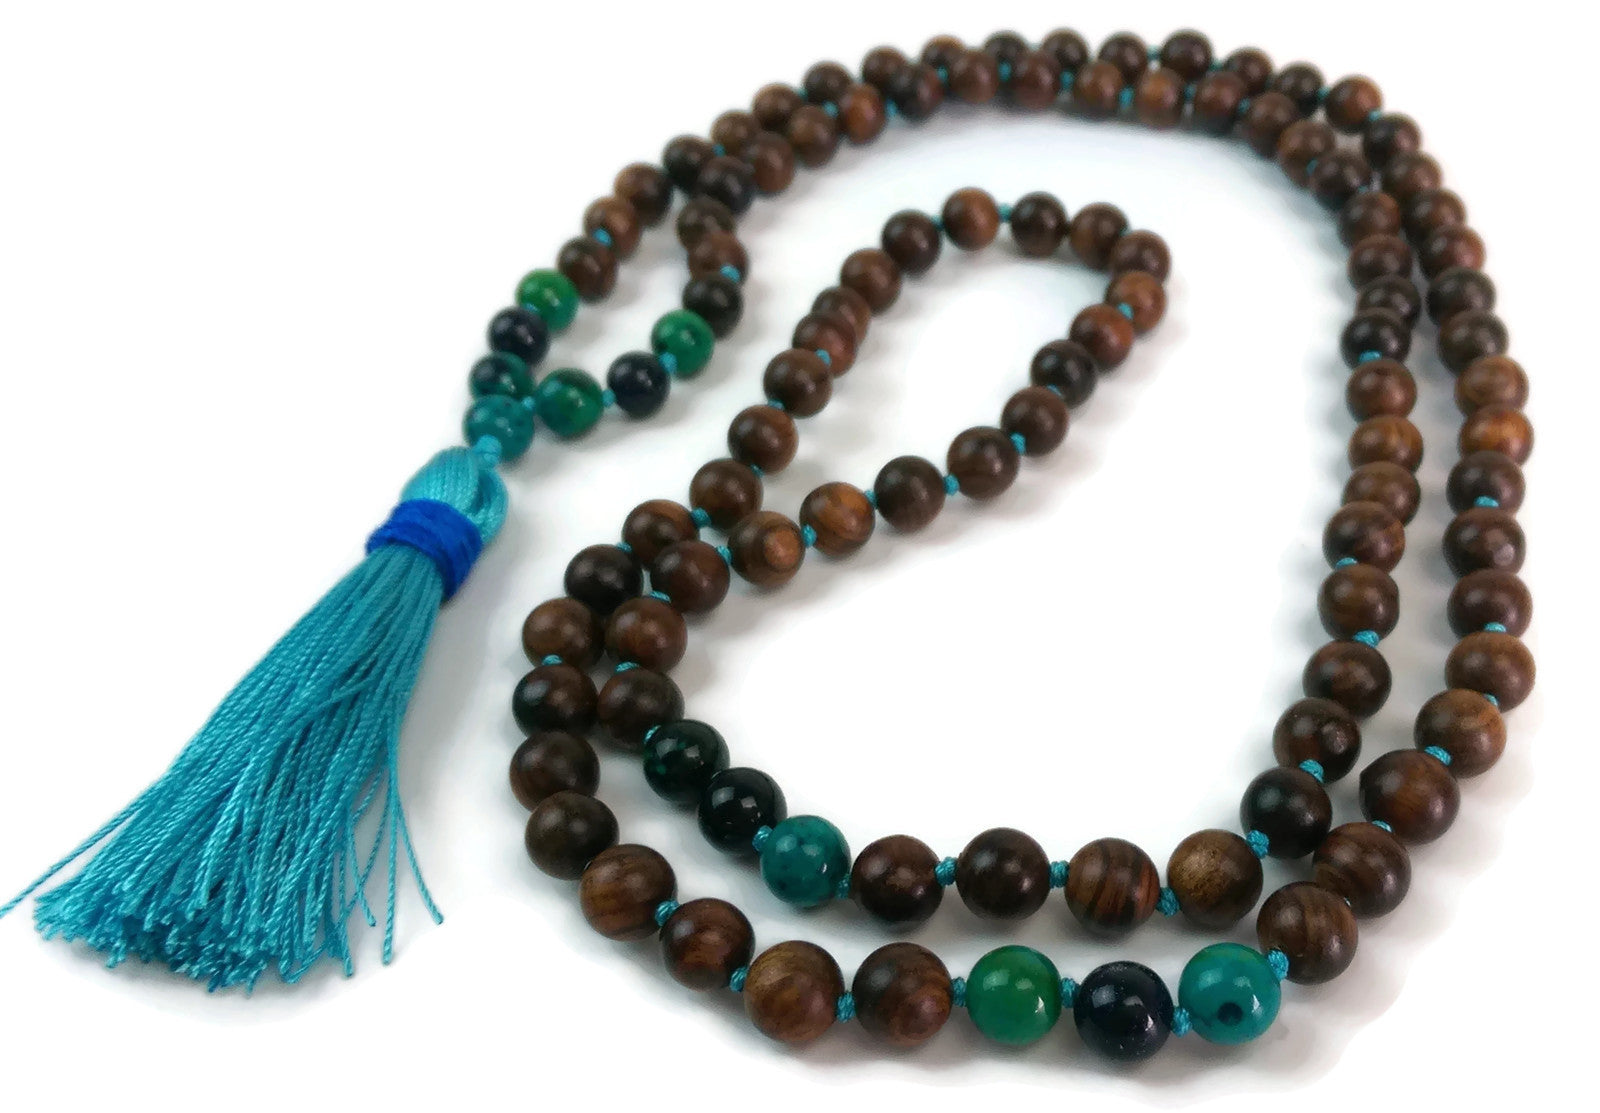 Balance Collection Sandalwood, Phoenix Stone and Sandstone Traditional Knotted 108 Meditation Mala Necklace with Blue Tassel